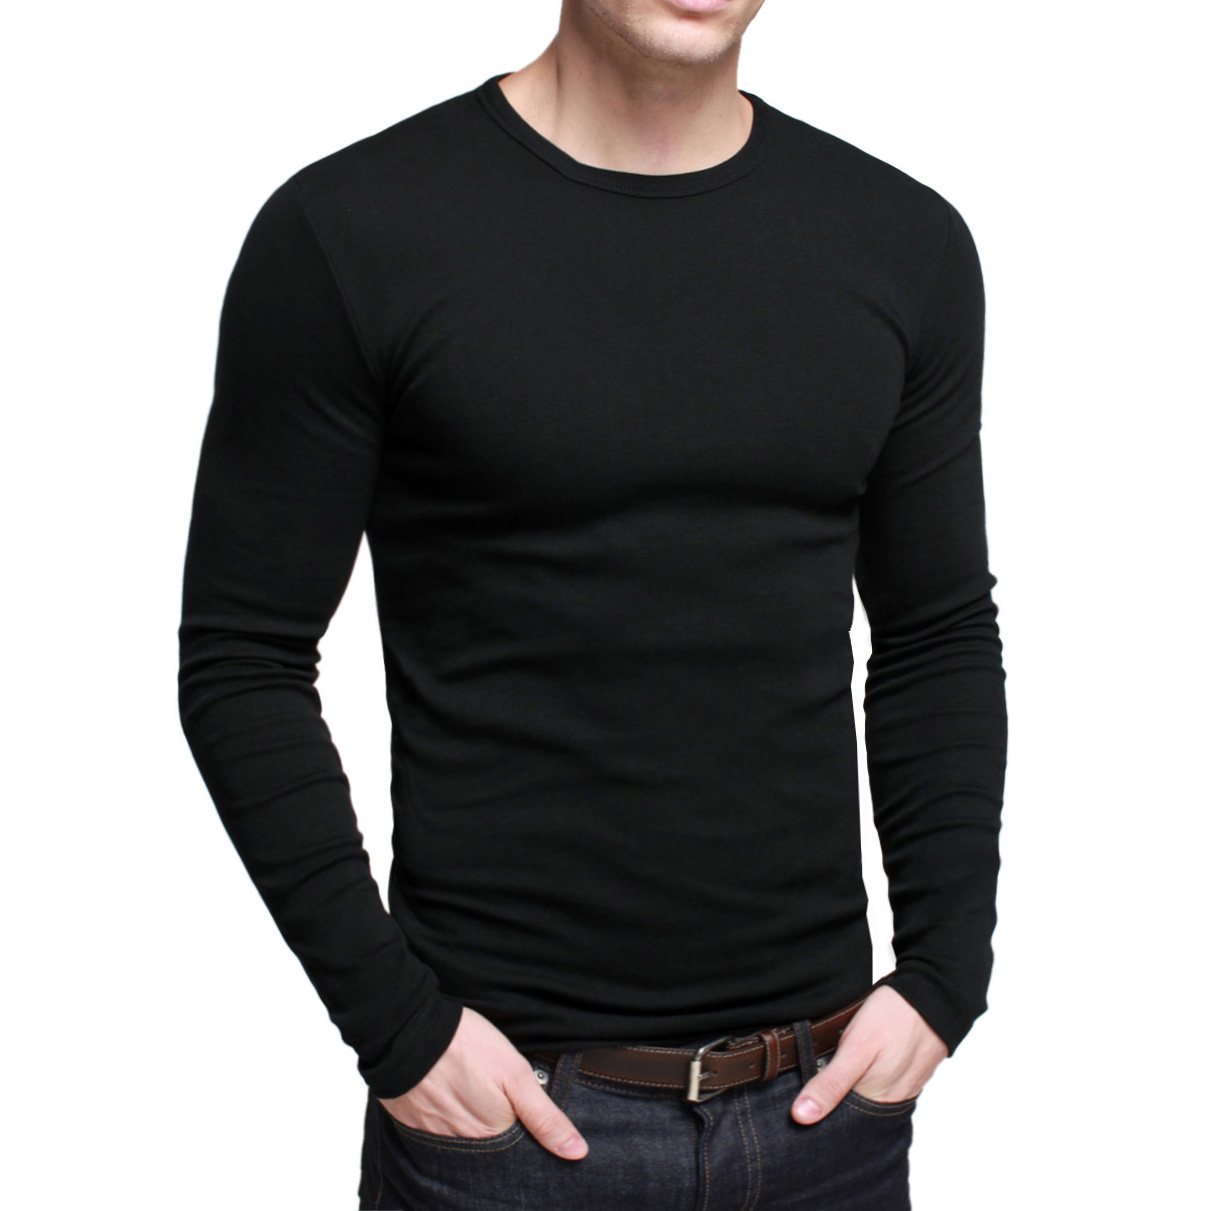 Aliexpress.com : Buy Free shipping Men's long sleeve T ...